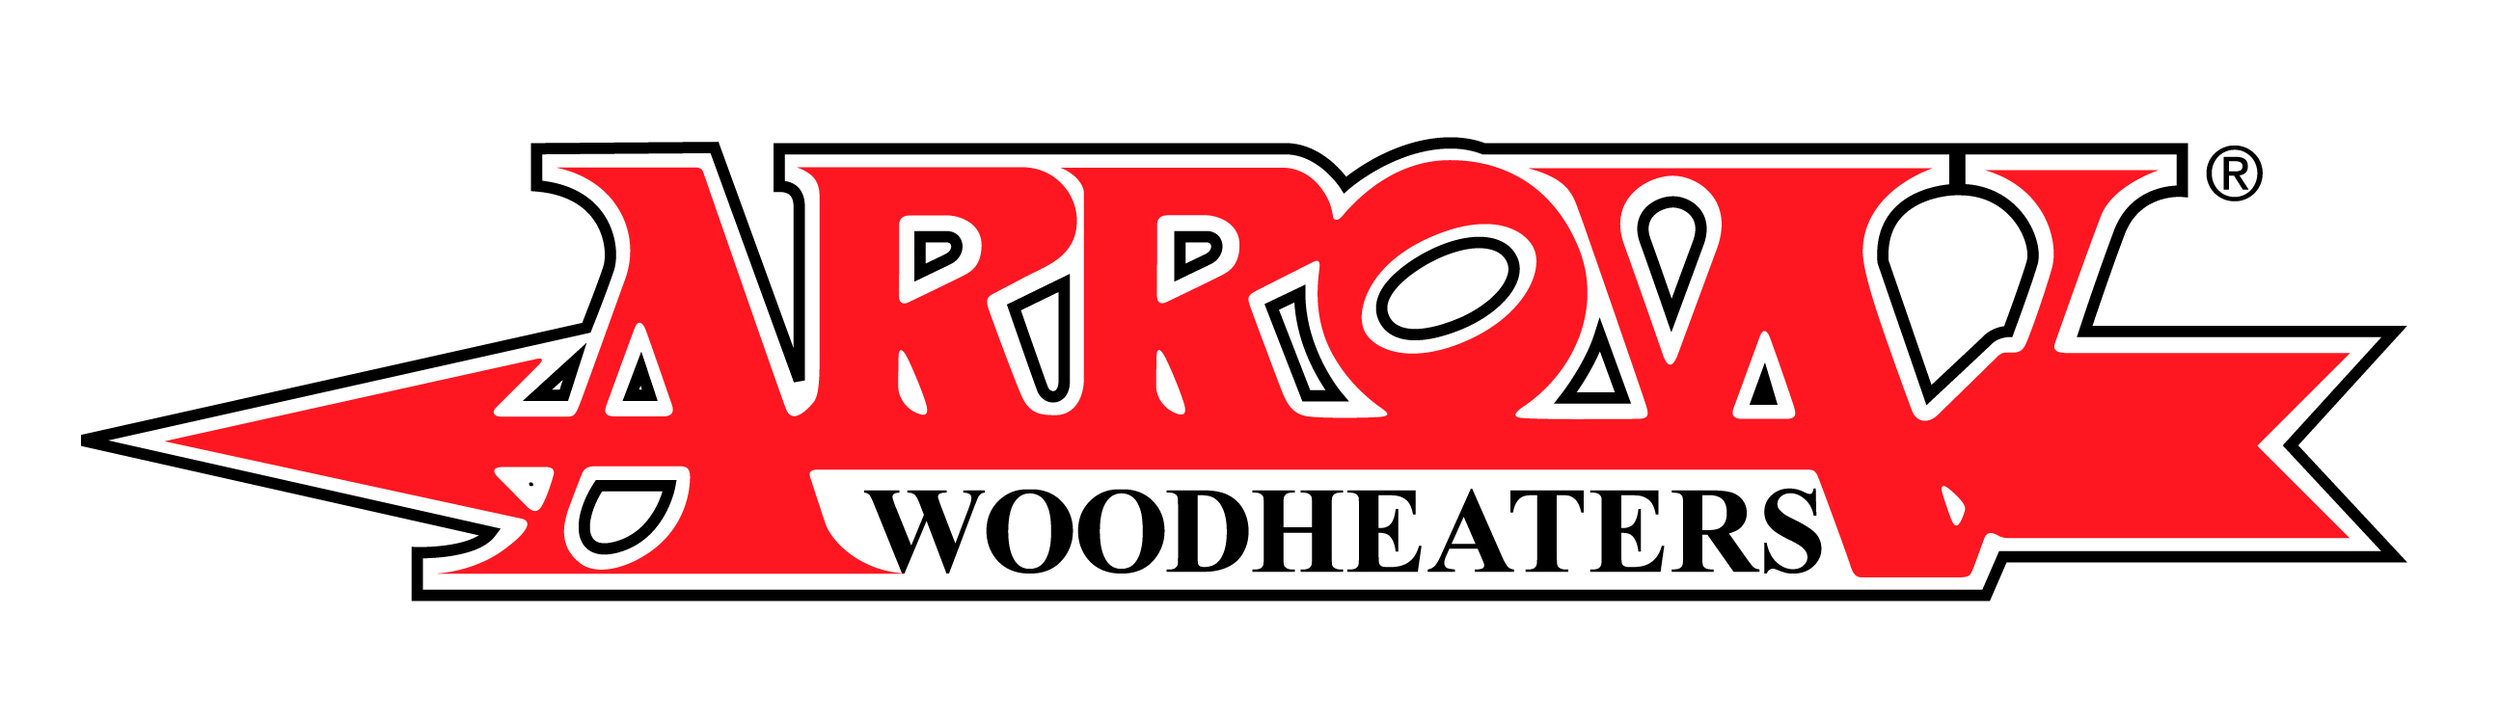 Arrow Woodheaters logo.jpg